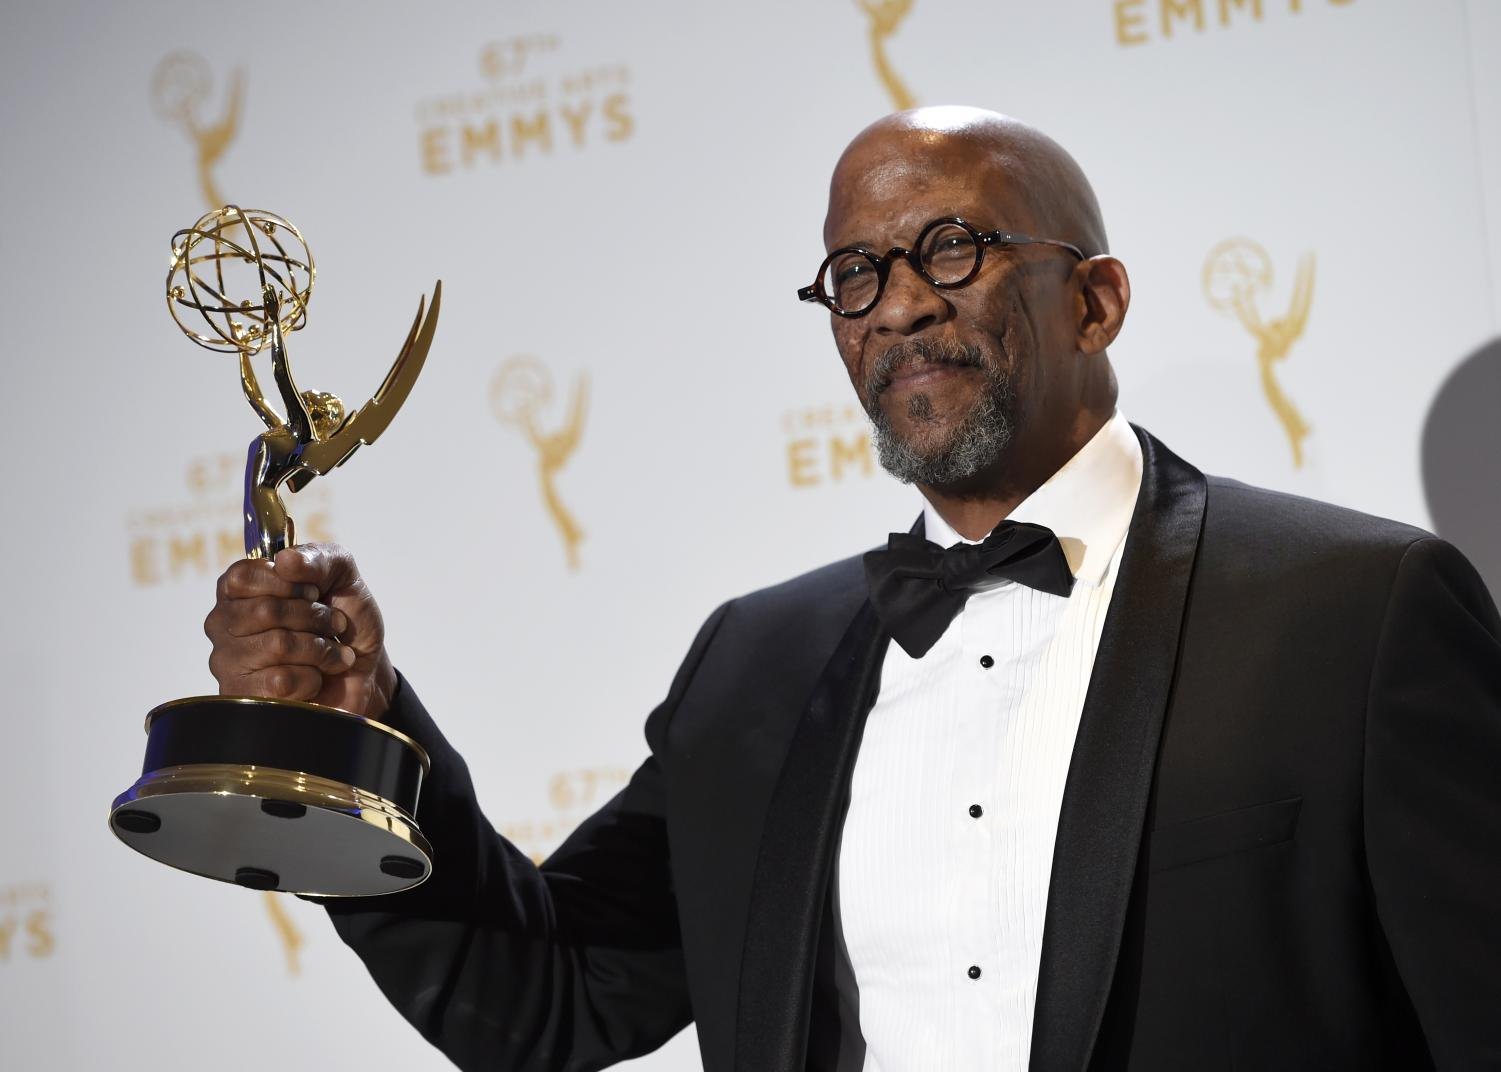 Emmy Winning Actor Reg E. Cathey Dead At 59